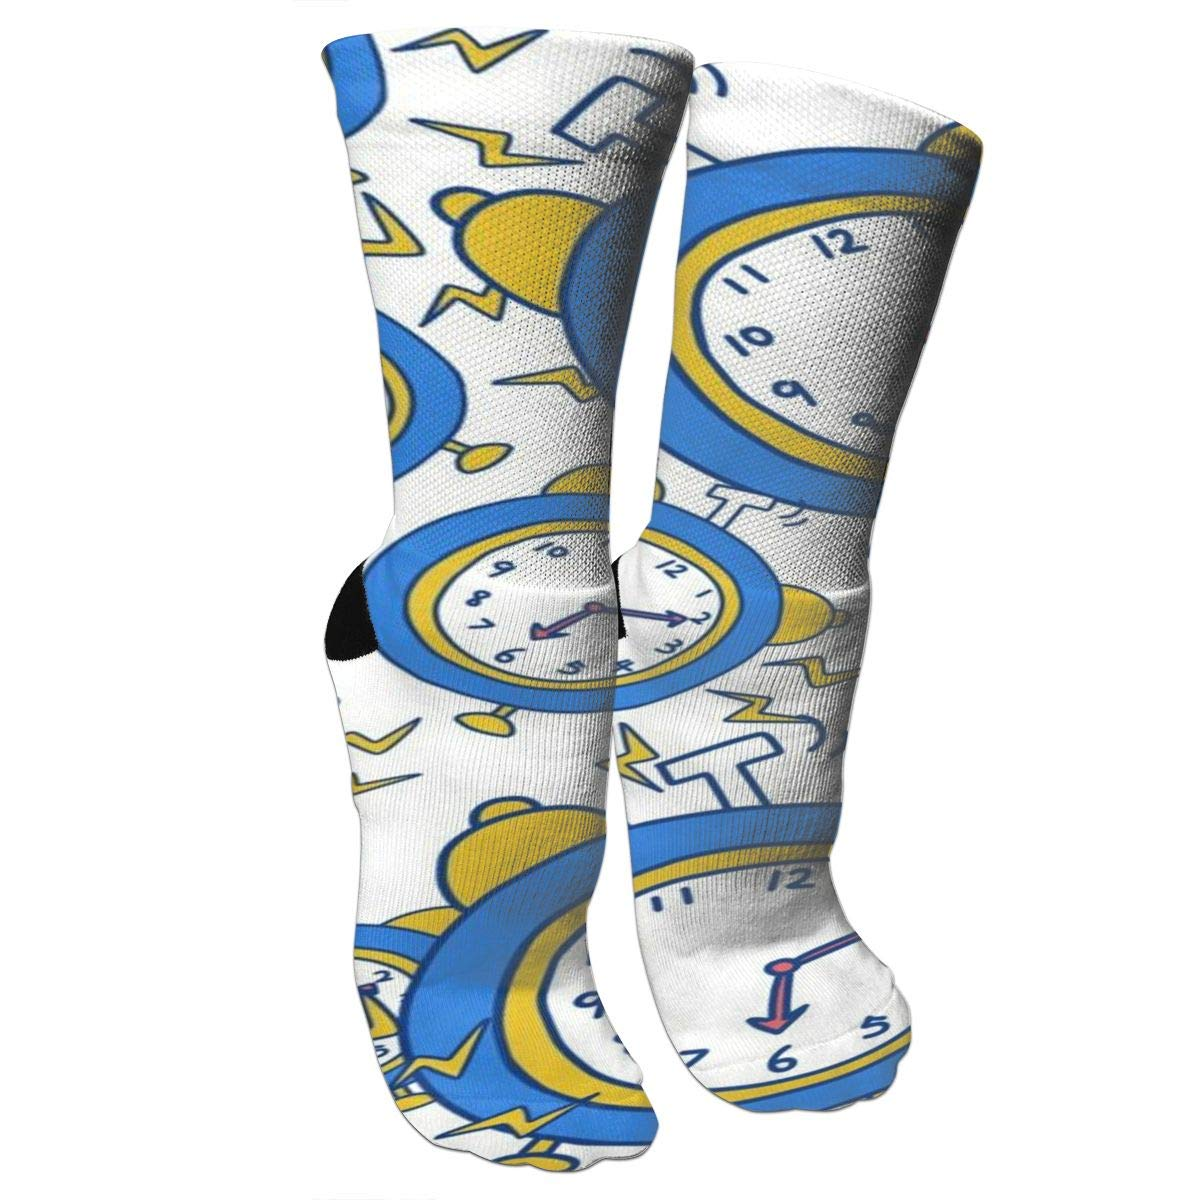 Varicose Veins Athletic Travel Ygsdf59 Alarm Clock Morning Compression Socks for Women and Men Best Medical,for Running